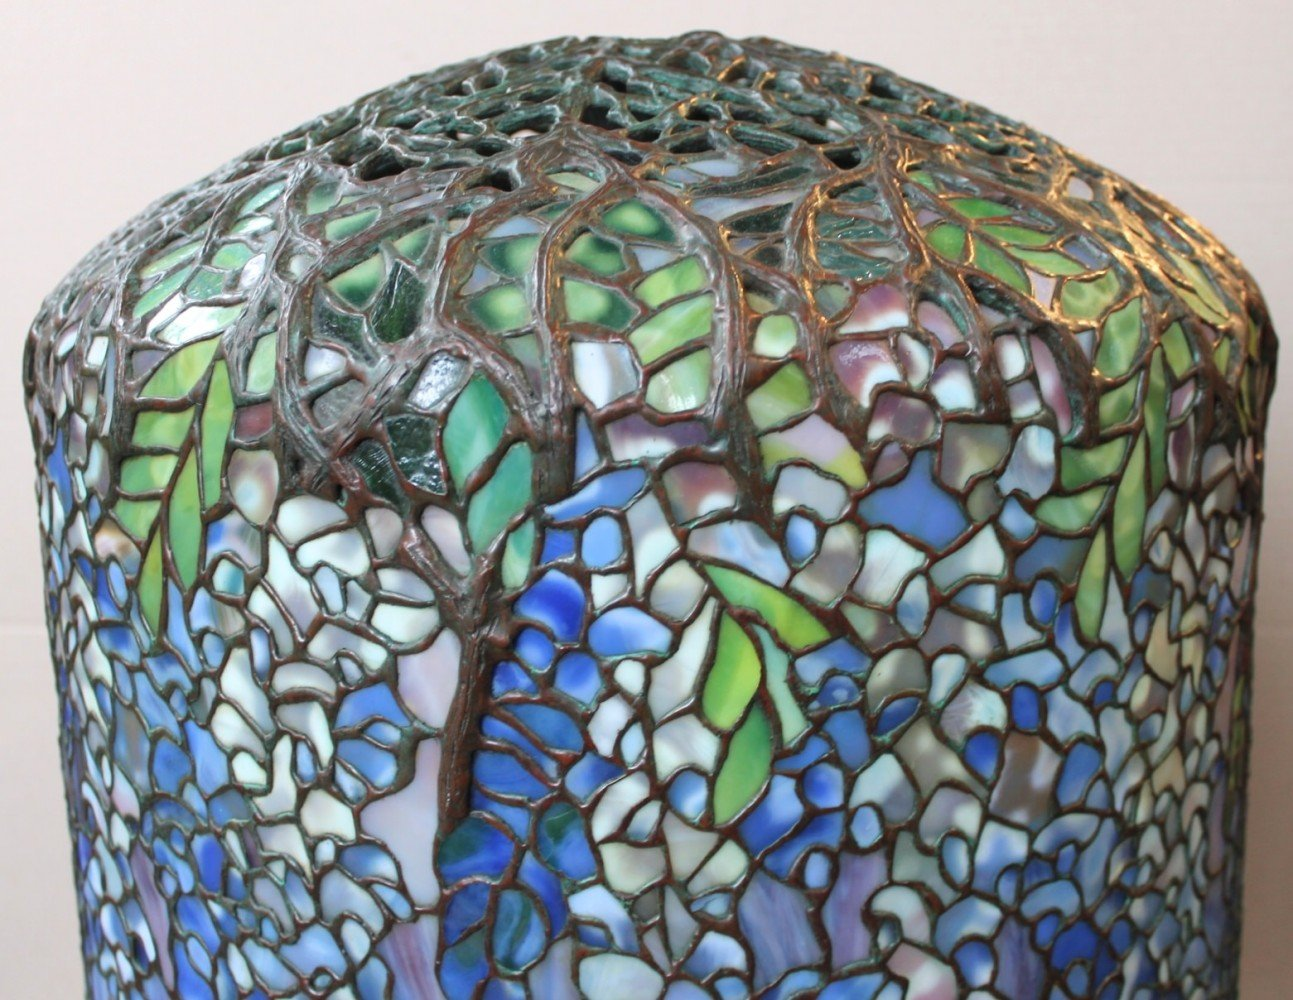 Tiffany Style Leaded Glass Wisteria Lamp, by Paul Crist Studios by Tiffany Studios